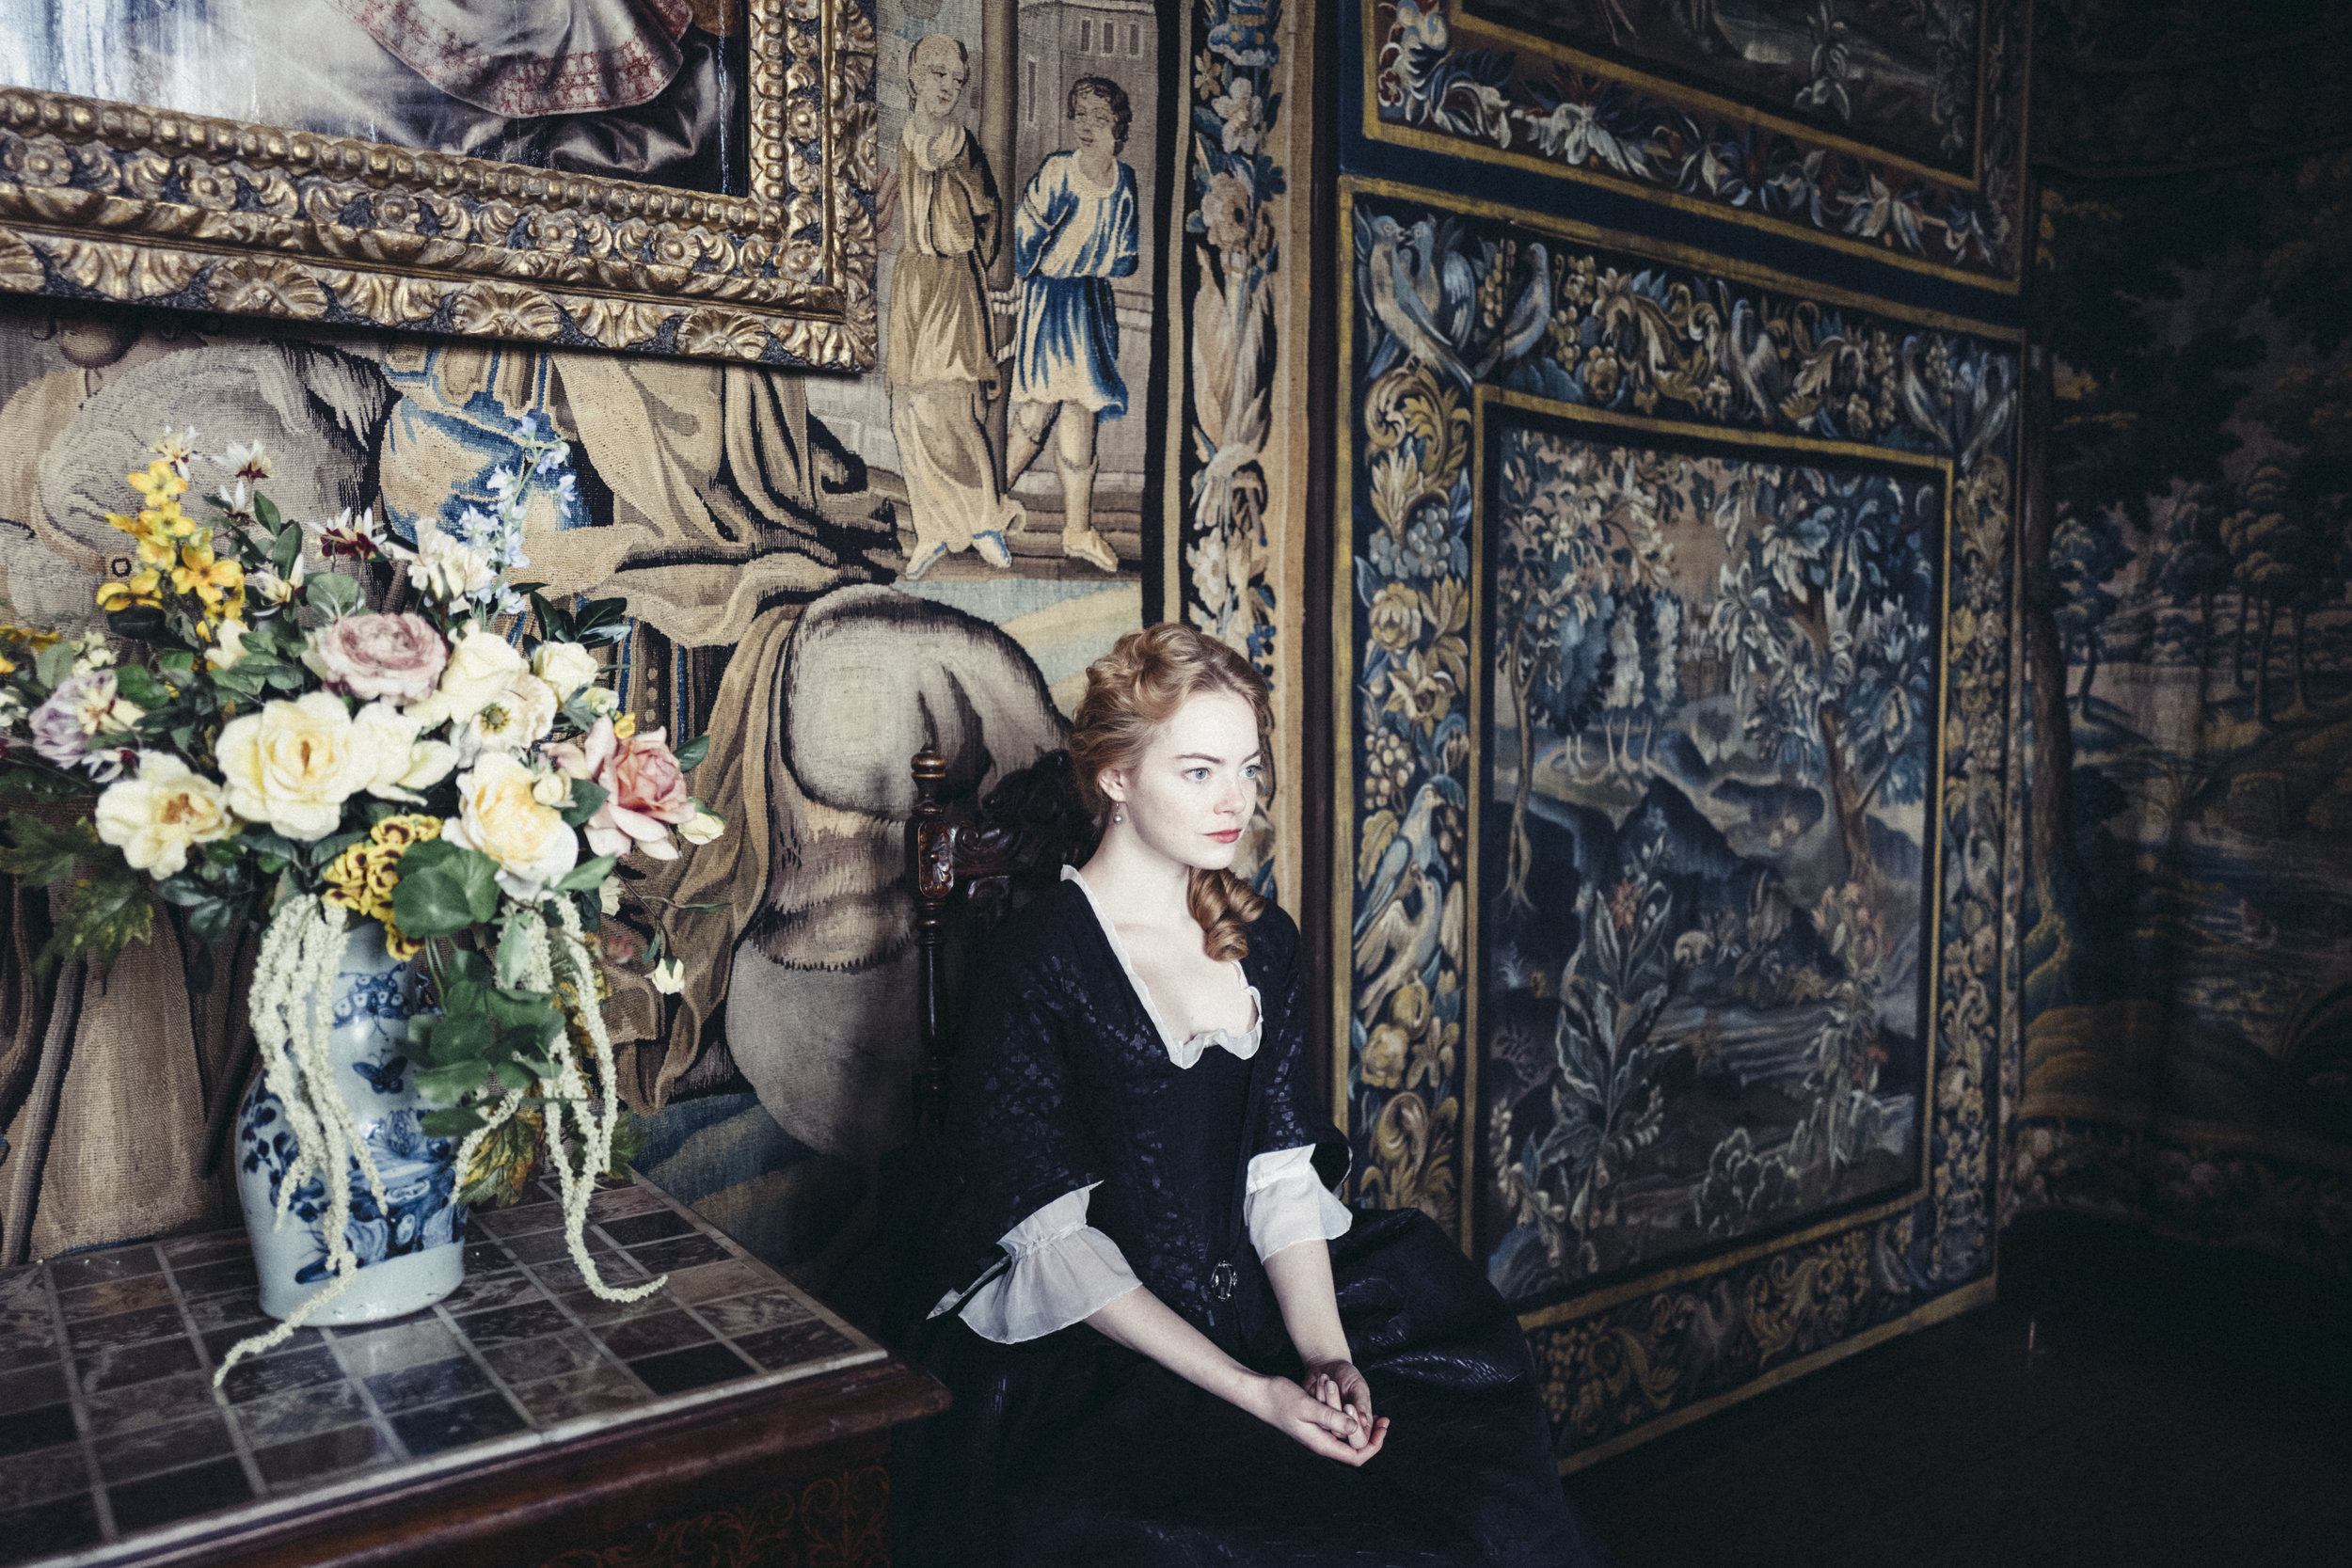 Emma Stone as Abigail. Photo by Yorgos Lanthimos. © 2018 Twentieth Century Fox Film Corporation All Rights Reserved